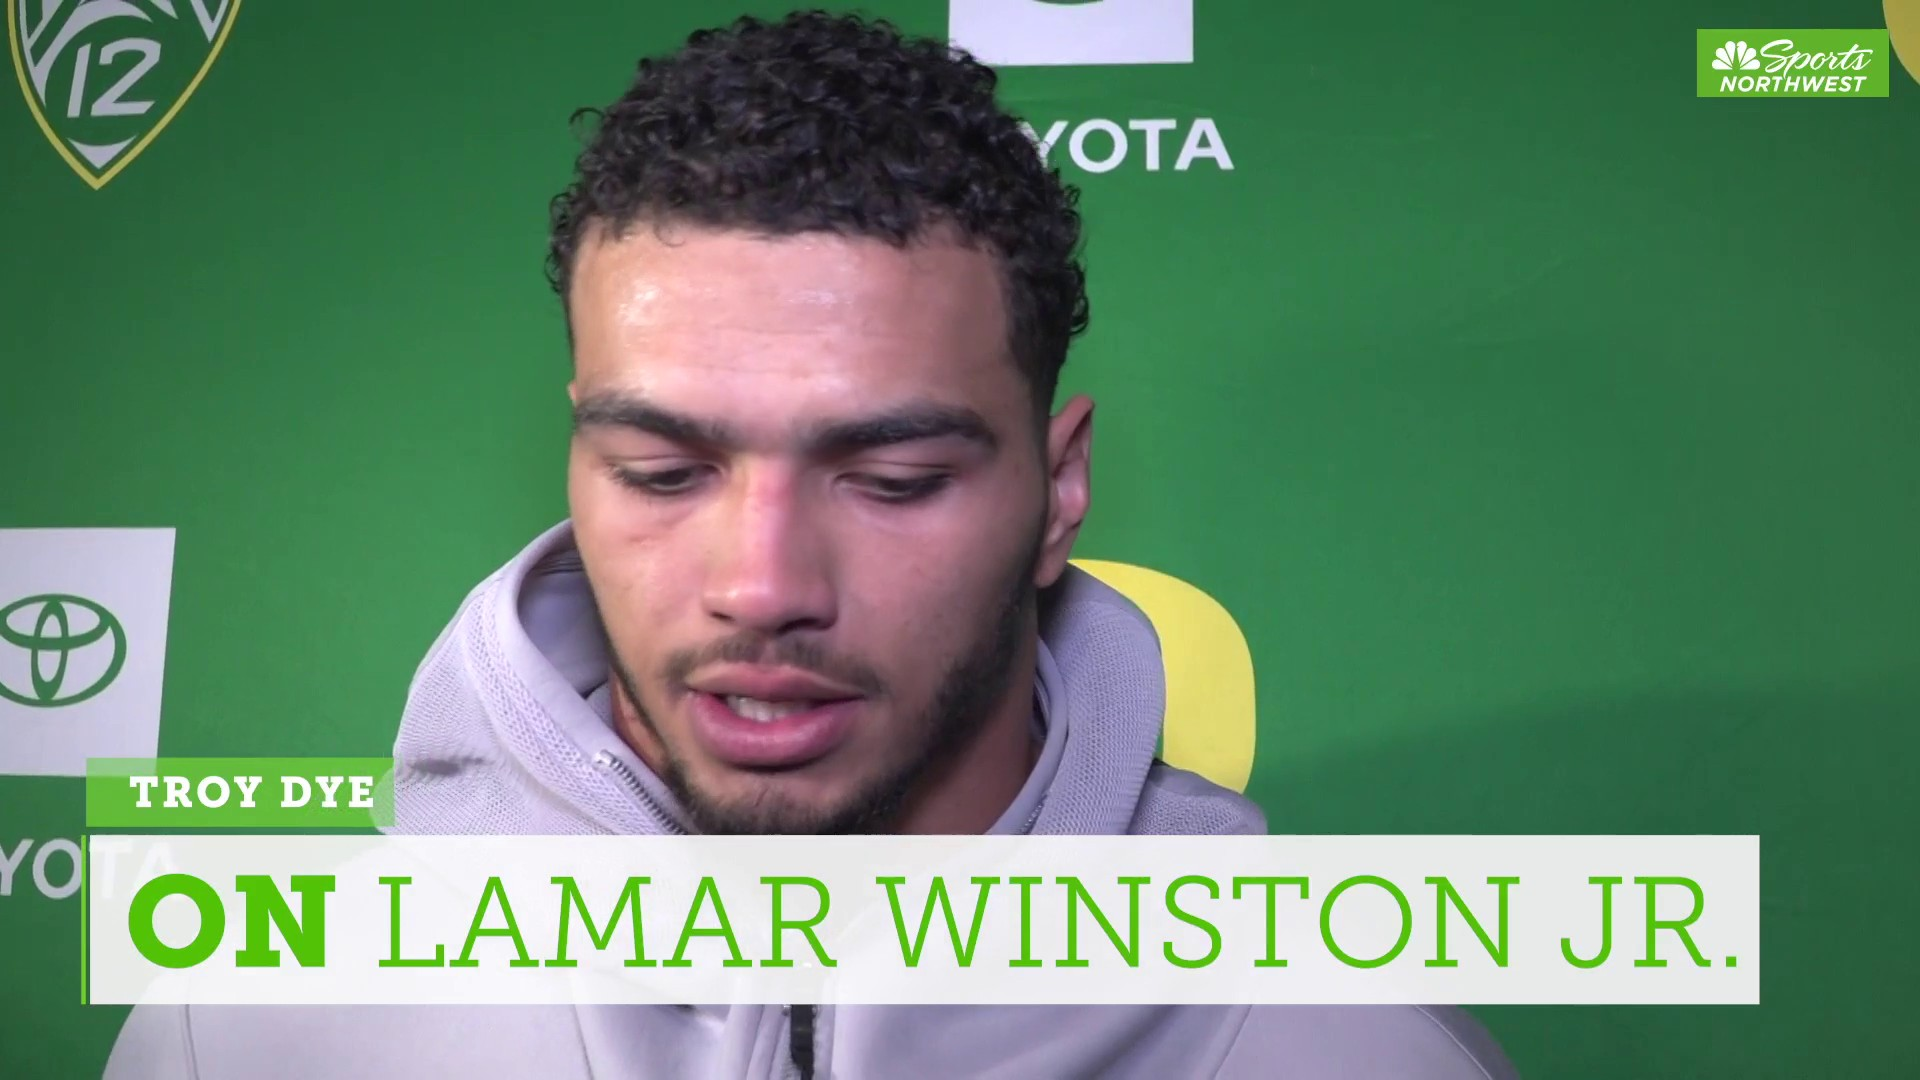 Cristobal on Herbert: He's unphased, a complete professional